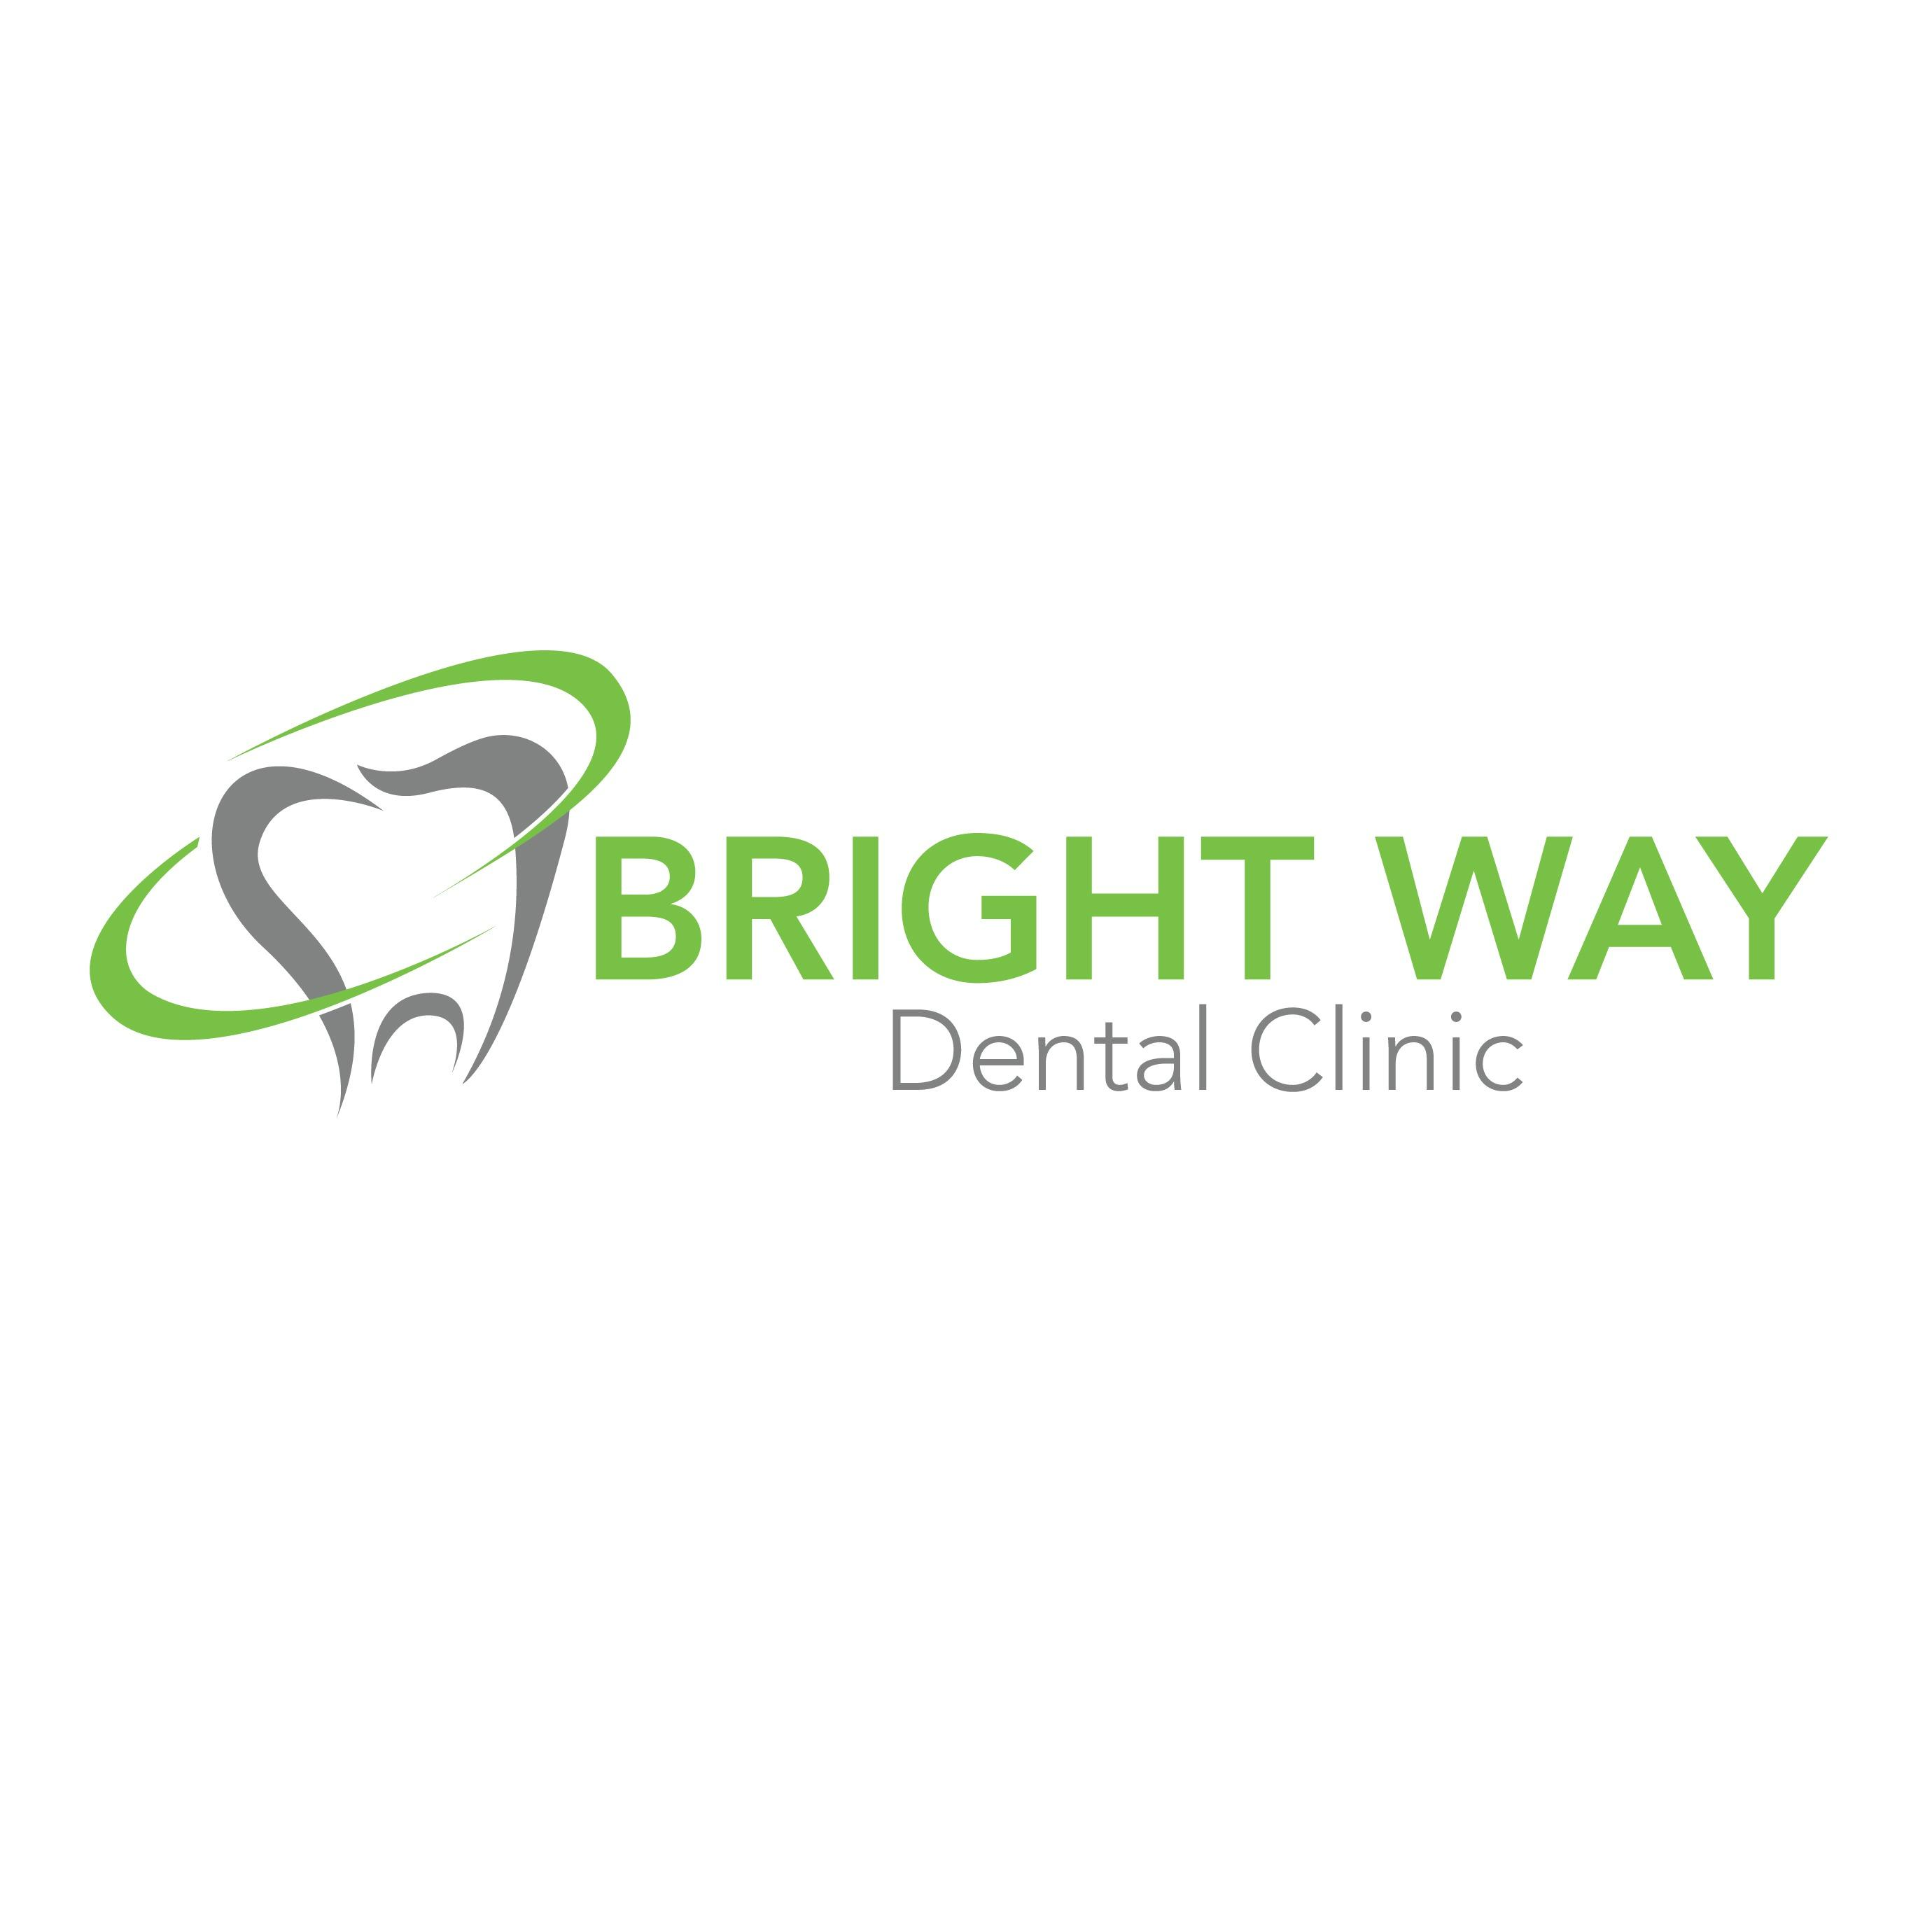 Bright Way Dental Clinic